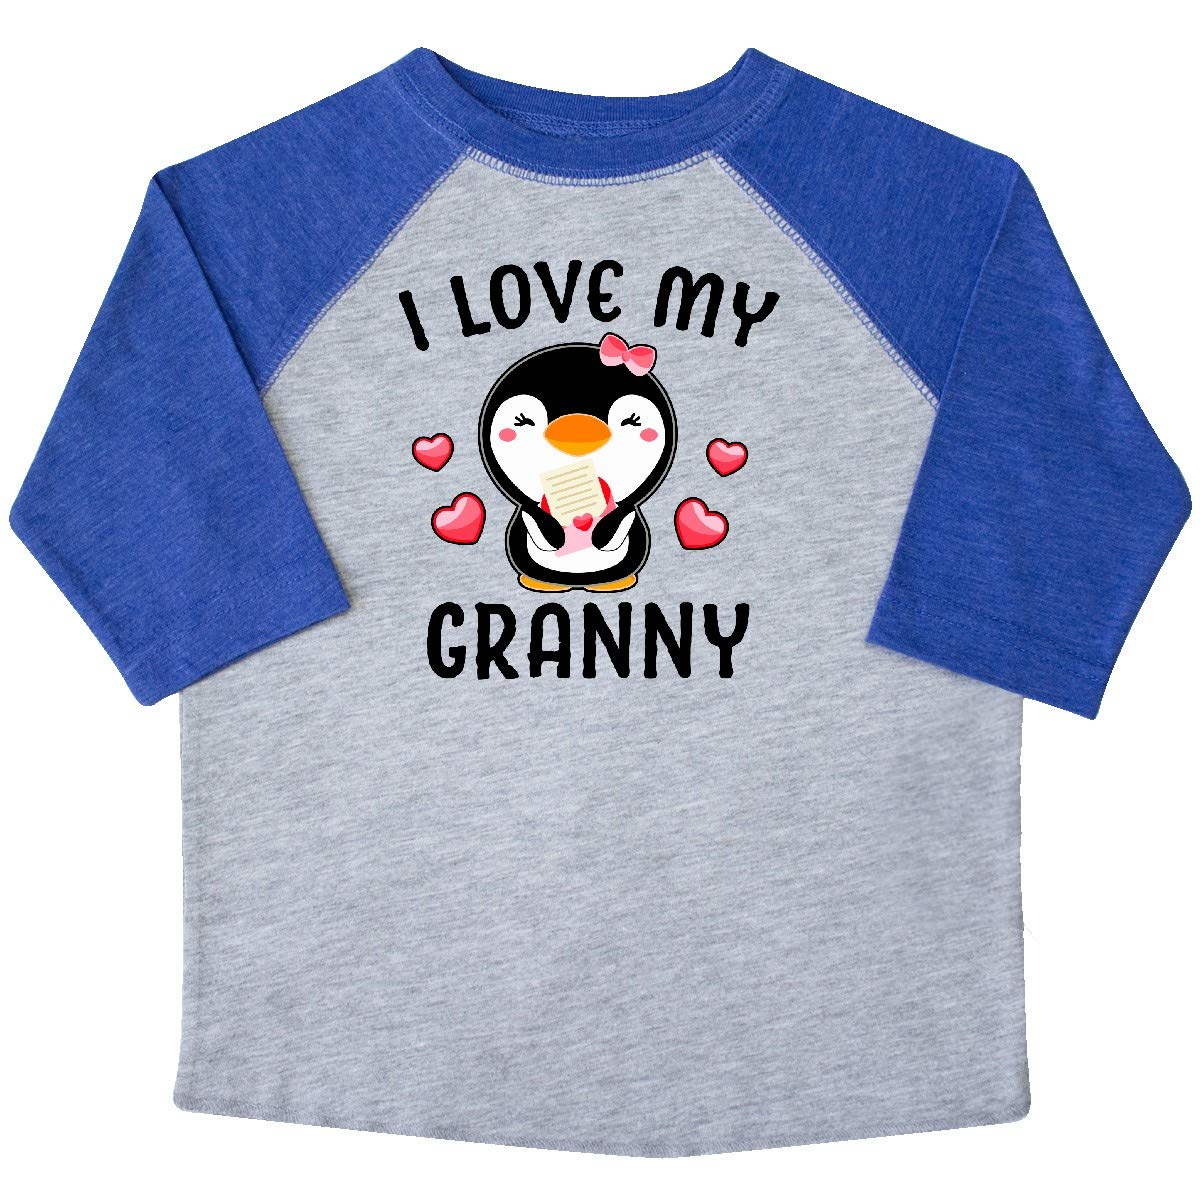 inktastic I Love My Granny with Cute Penguin and Hearts Toddler T-Shirt